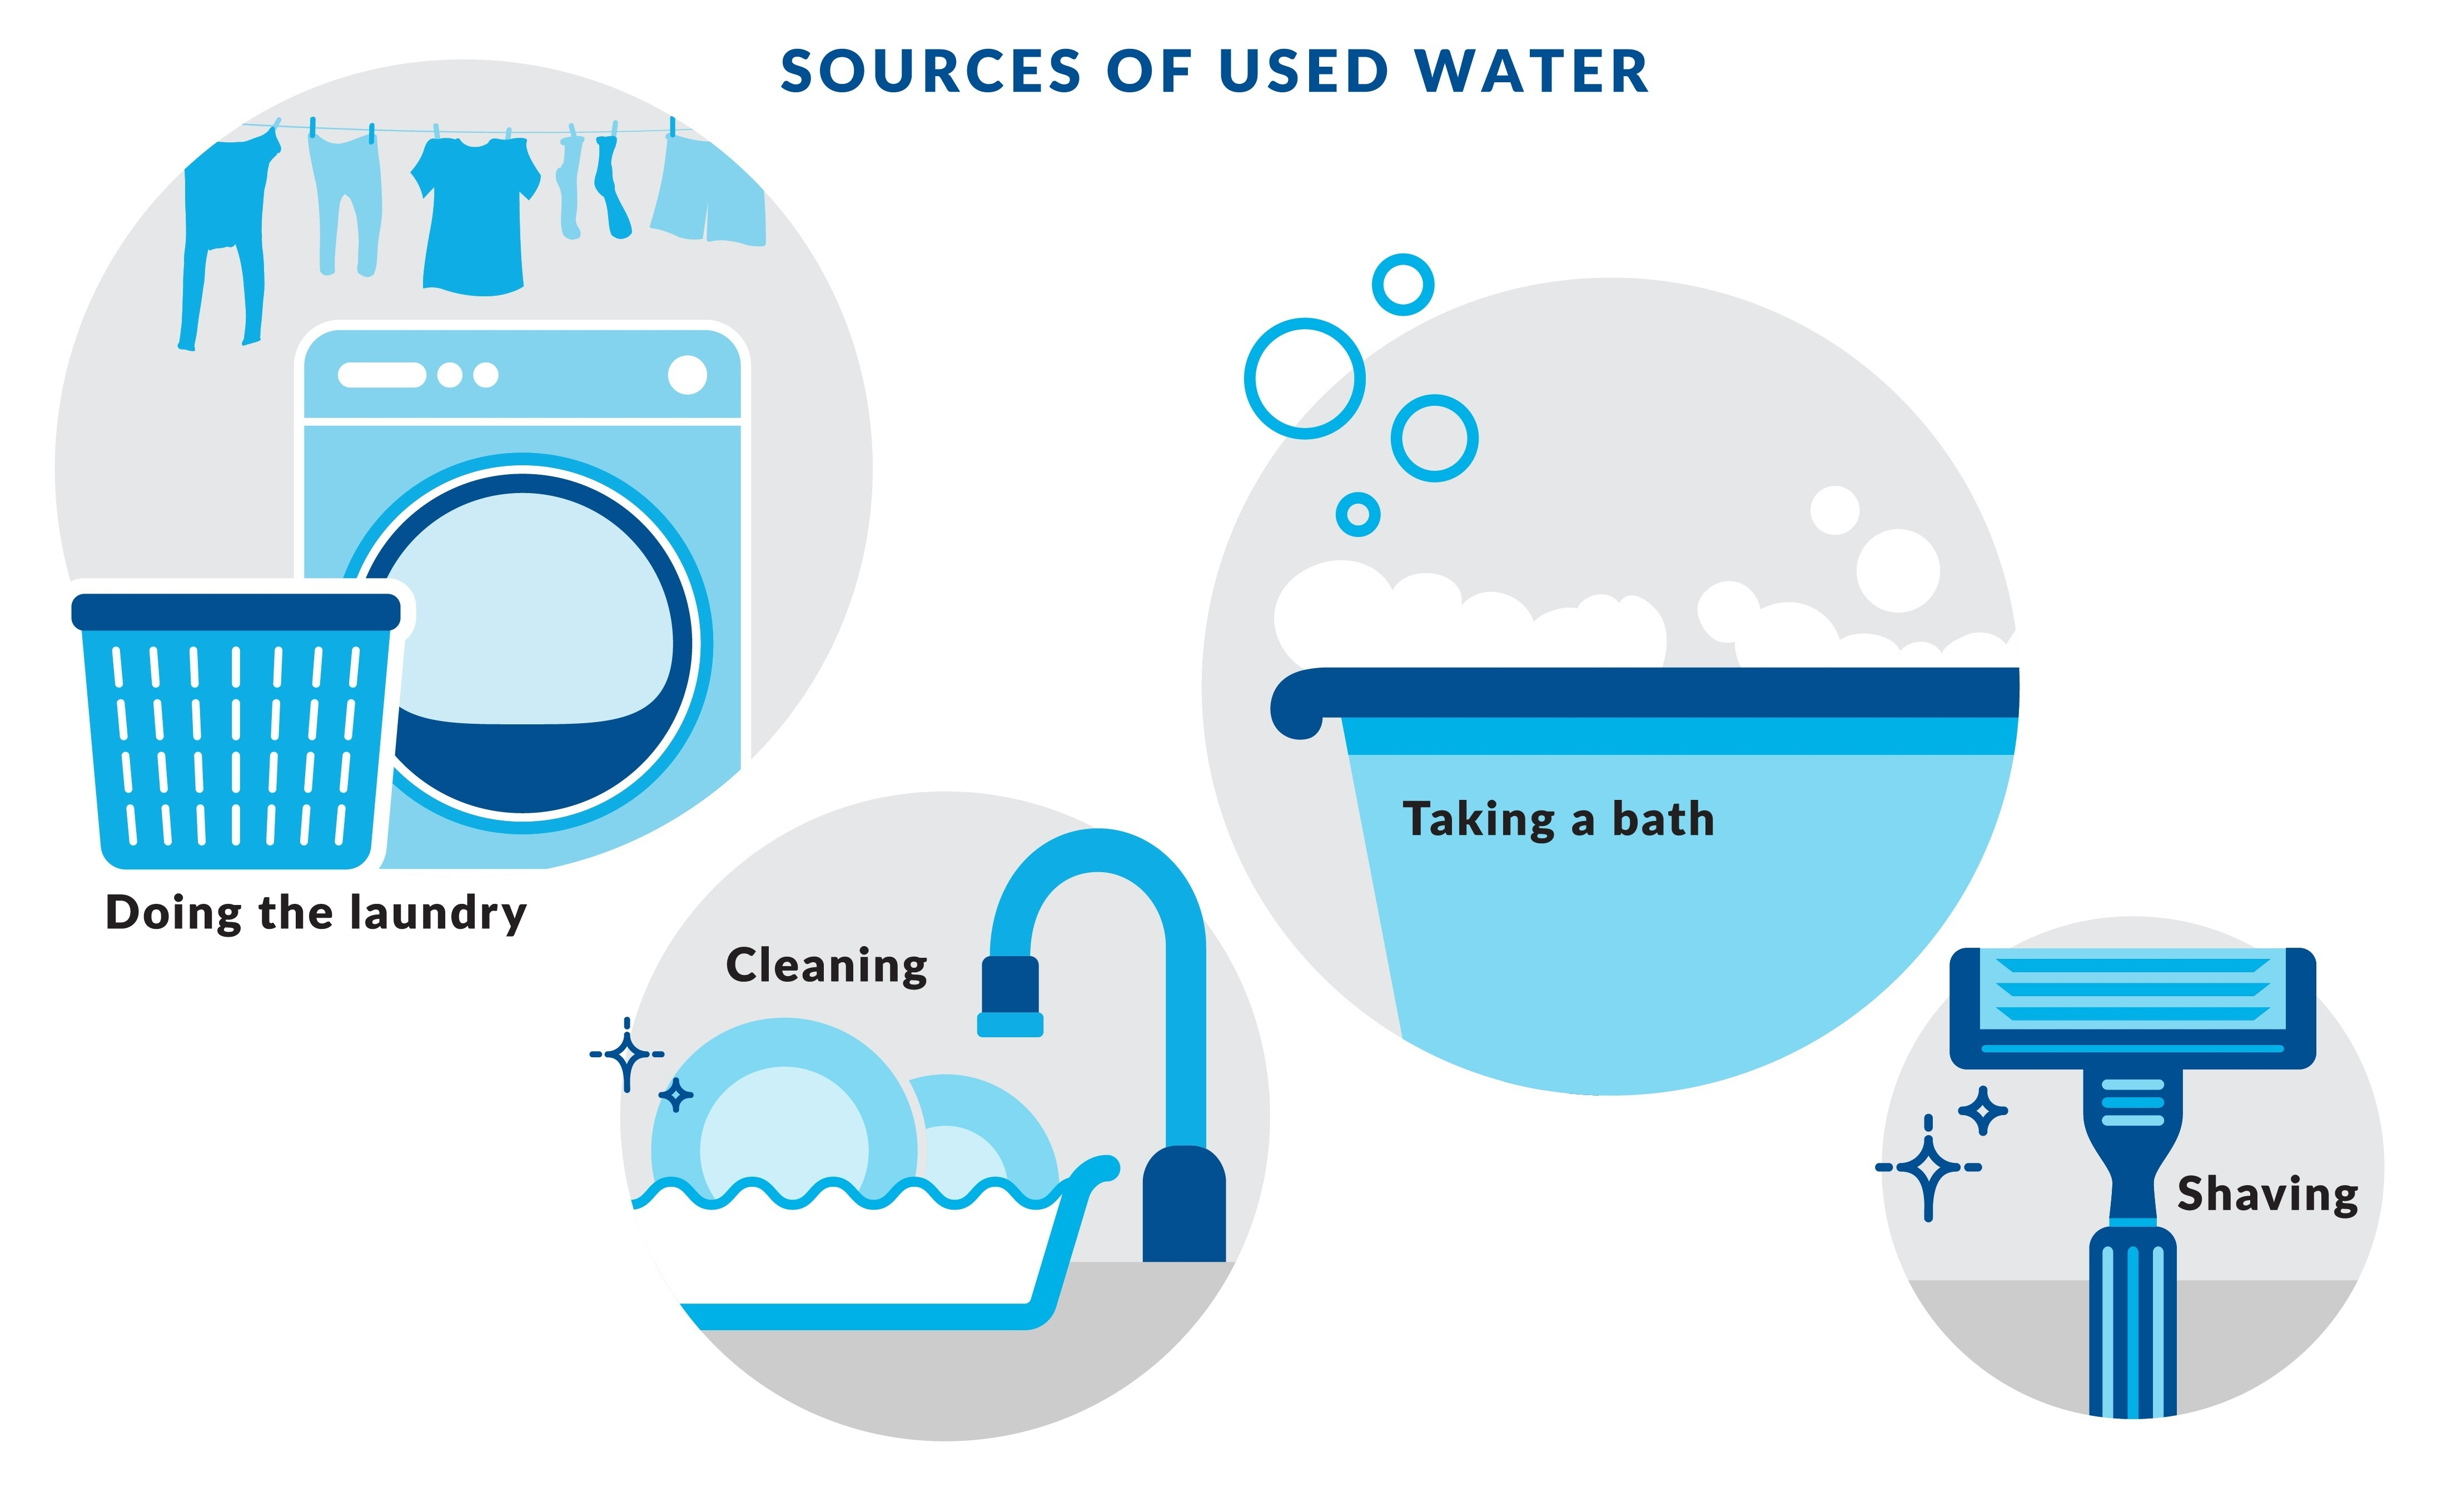 Sources of Used Water